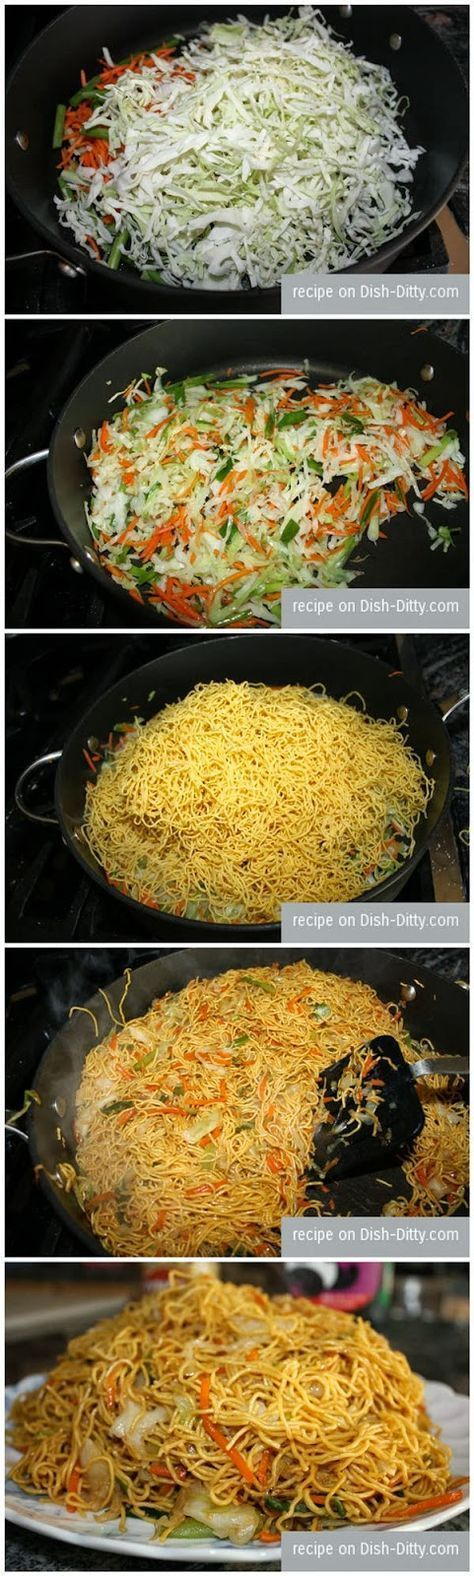 Vegetable Chow Mein Recipe - 1 Tbl oil 2 cups shredded cabbage 1 cup shredded carrots 1/2 bunch sliced green onions 1 lb fresh steamed thin chow mein noodles 1 cup chicken (vegetarian style) broth 1/4 cup soy sauce 1/4 cup sesame oil 1/4 cup lo mein sauce (vegetarian version) swap with whole wheat noodles if wanted